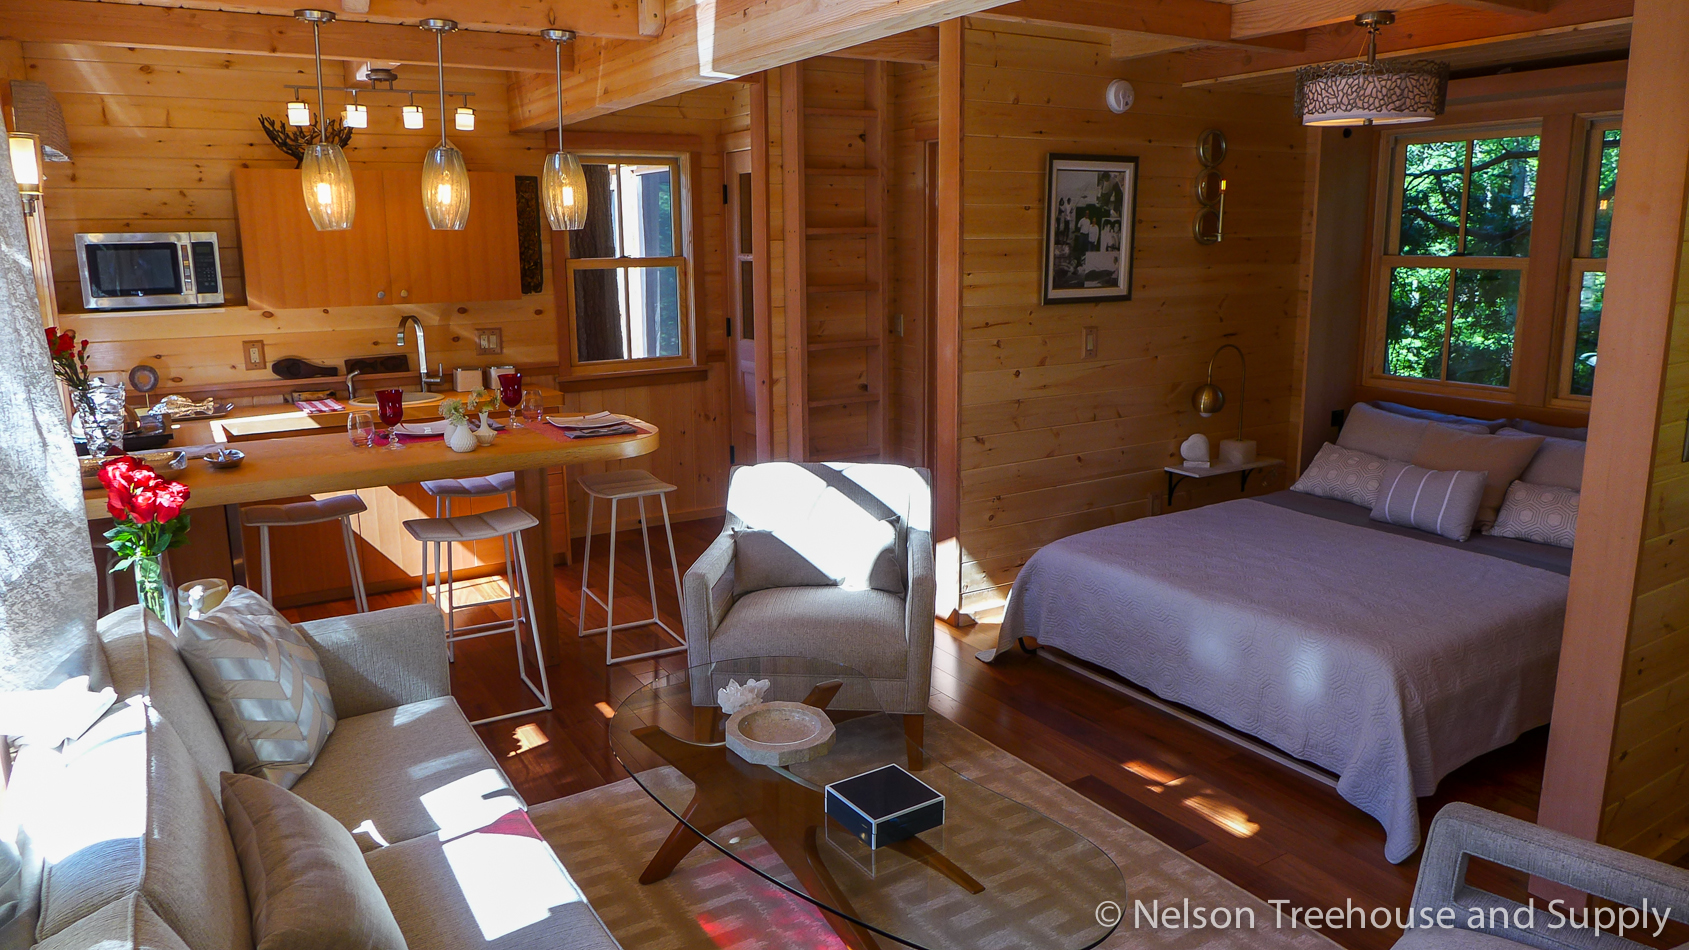 chang_treehouse_living_room_1